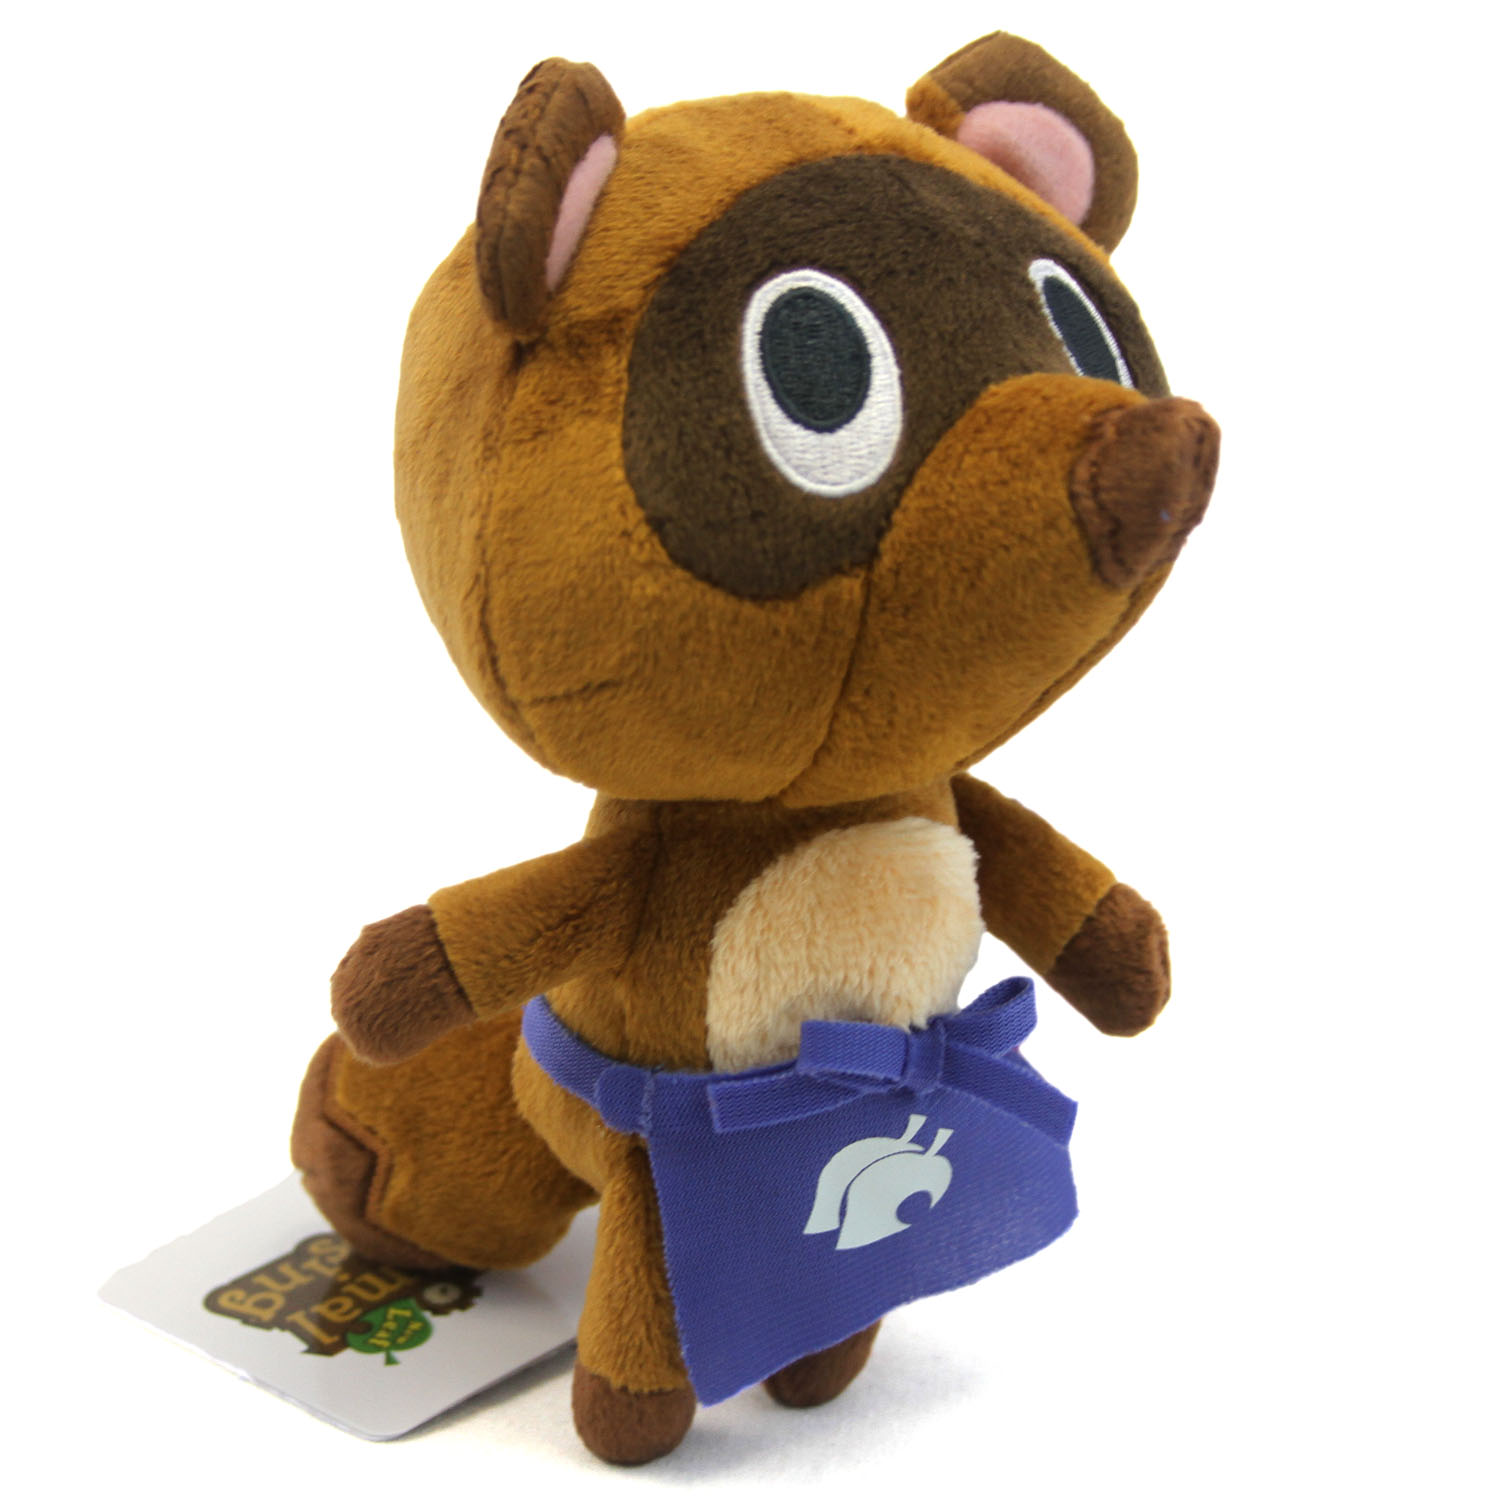 ANIMAL CROSSING TIMMY STORE 5'' PLUSH (LITTLE BUDDY) - image 1 of 1